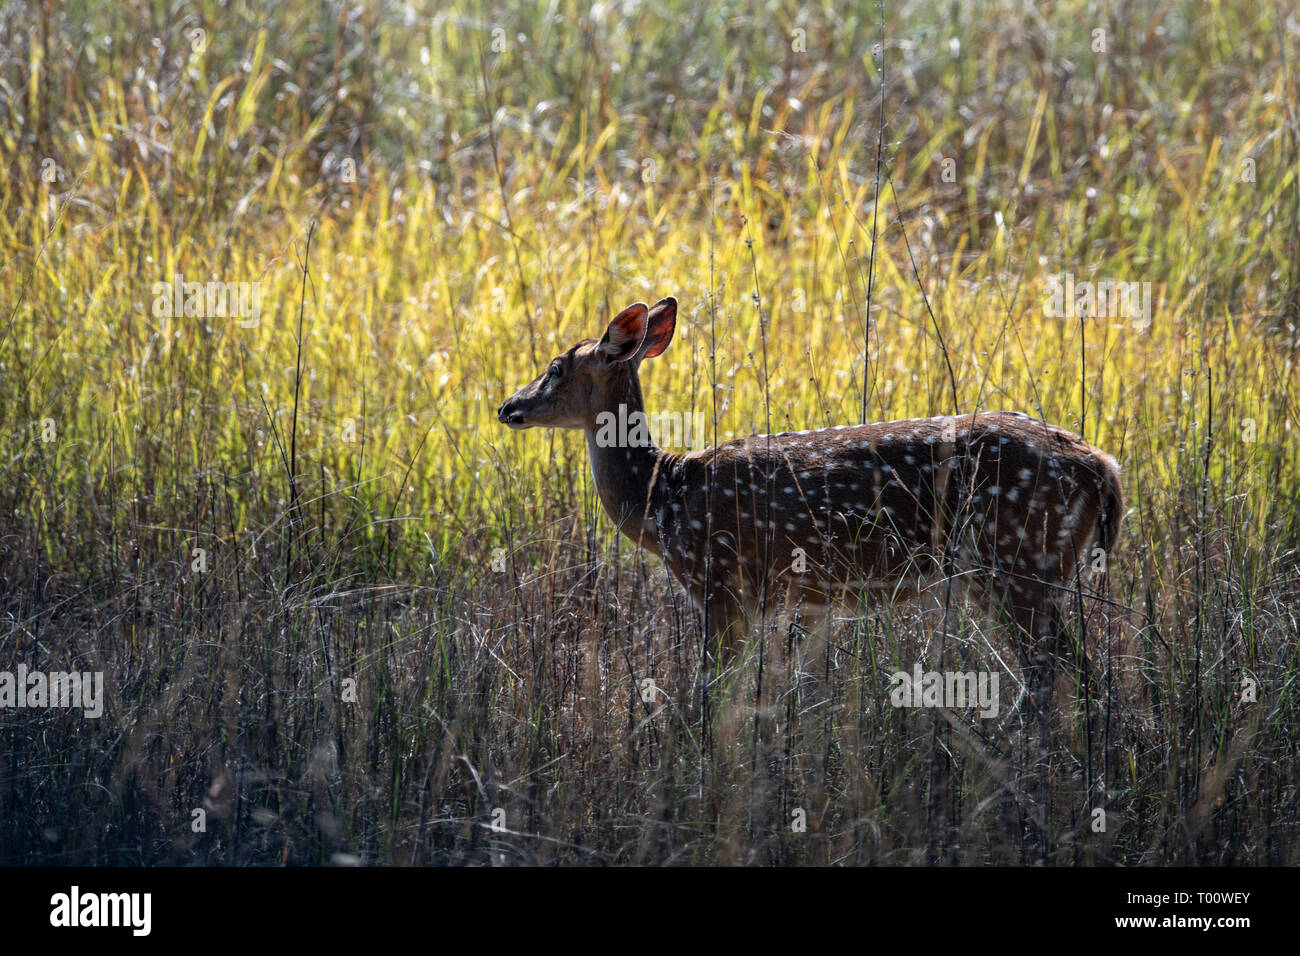 Chital (Axis axis) in India - Stock Image